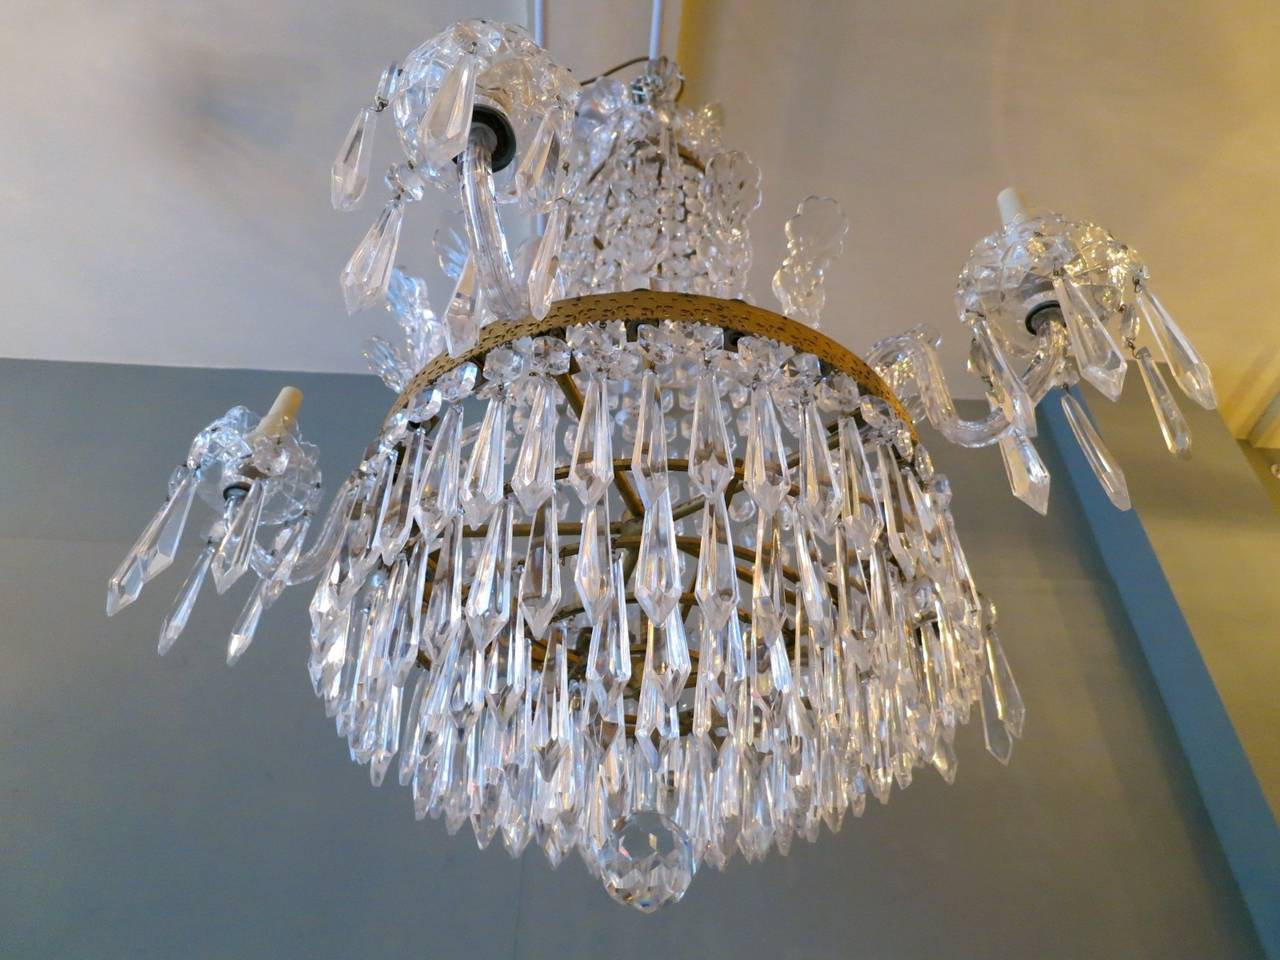 Empire style waterford crystal chandelier at 1stdibs empire style waterford crystal chandelier 3 arubaitofo Gallery